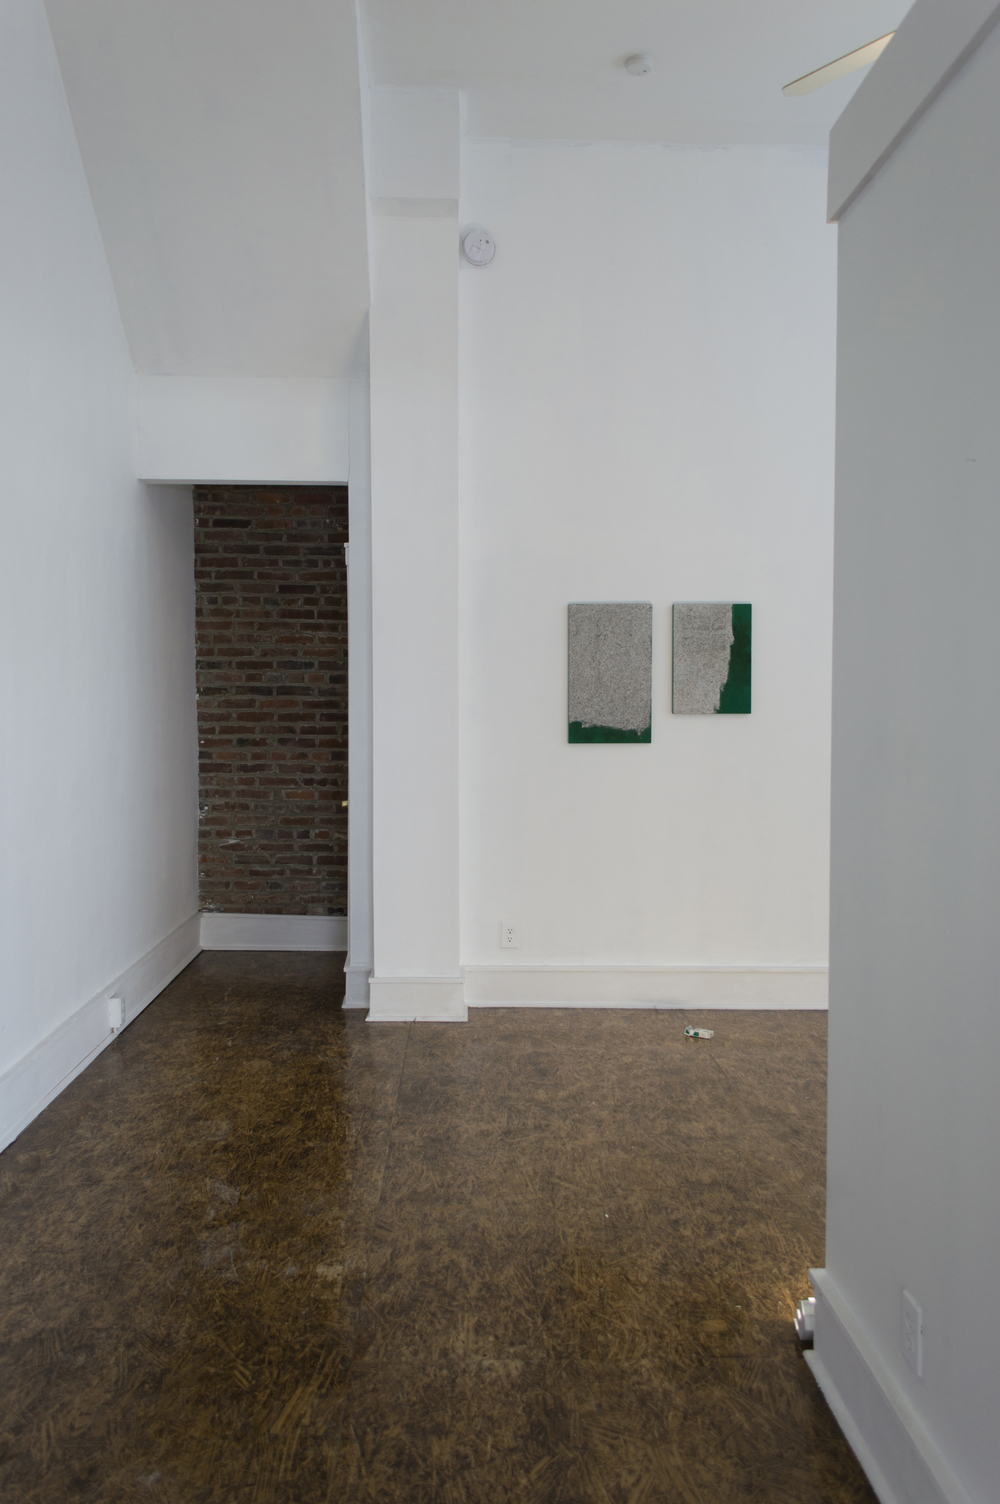 Install View     Untitled (2014)  Acrylic on linen  25h x 15w in     Untitled (2014)  Acrylic and photo-transfer on linen  20h x 14w in